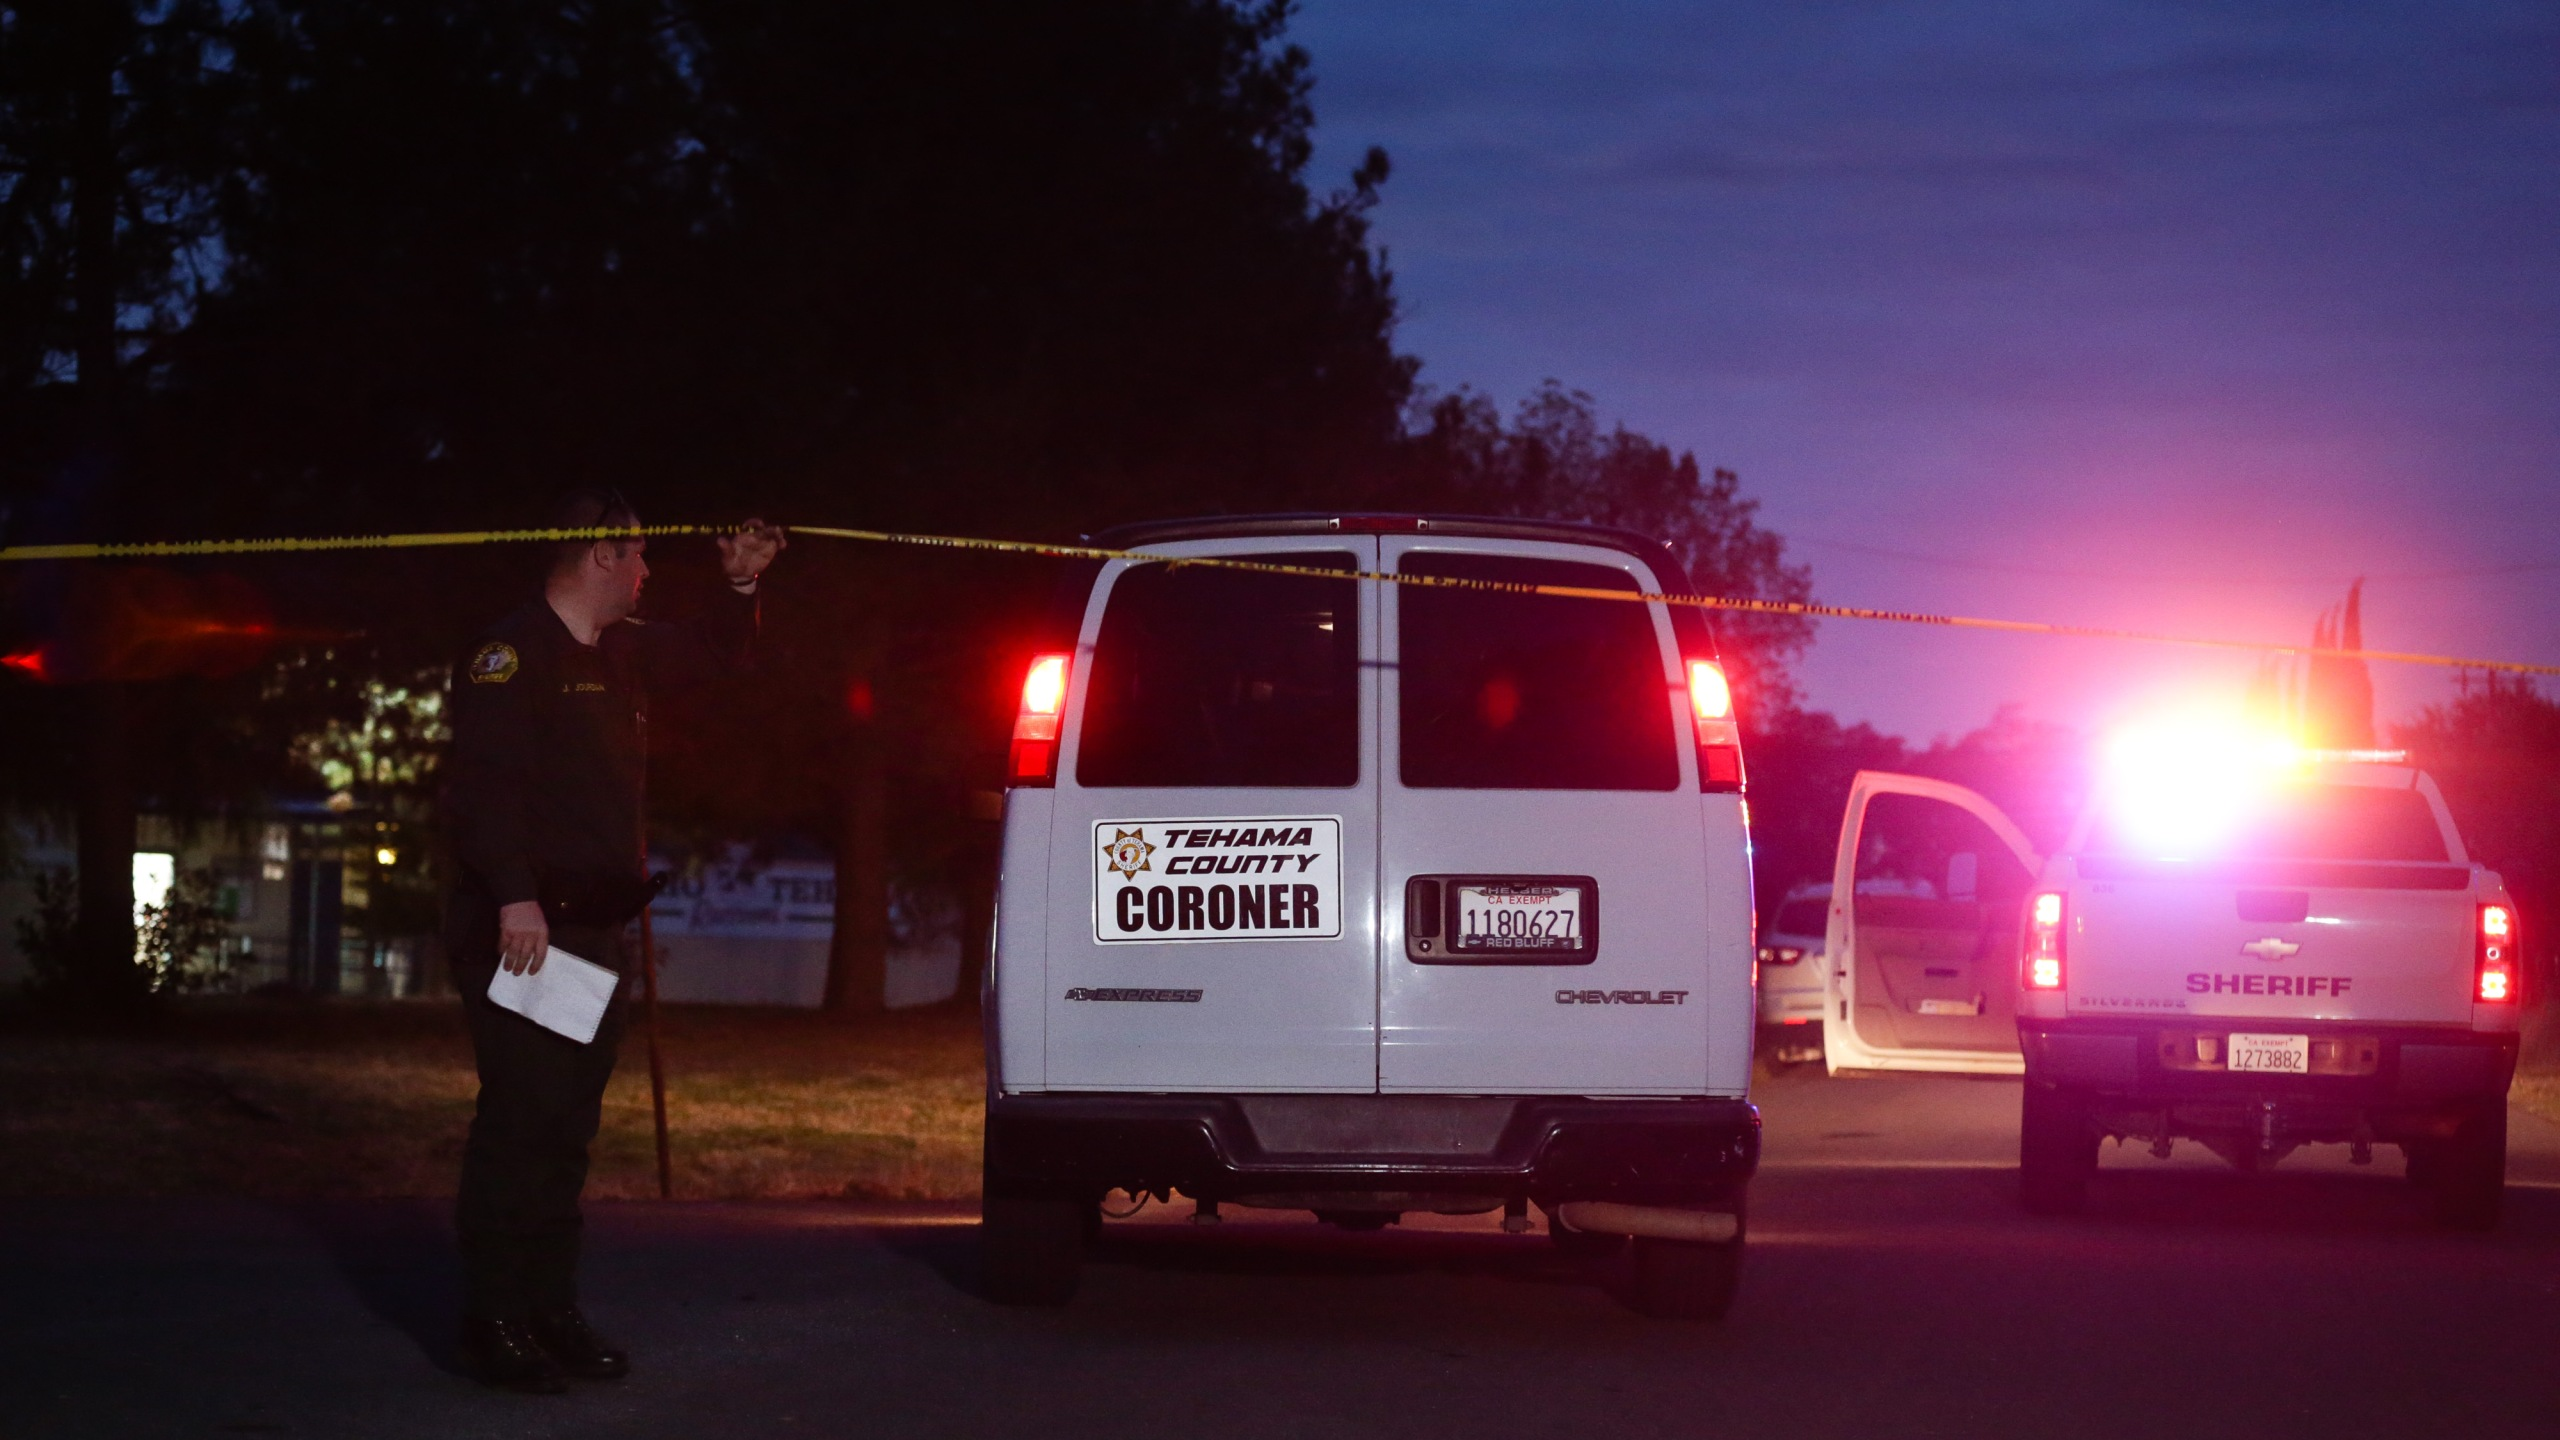 A Tehama County coroner's van enters the Rancho Tehama Elementary school grounds after a shooting on Nov. 14, 2017, in Rancho Tehama. (Credit: ELIJAH NOUVELAGE/AFP/Getty Images)